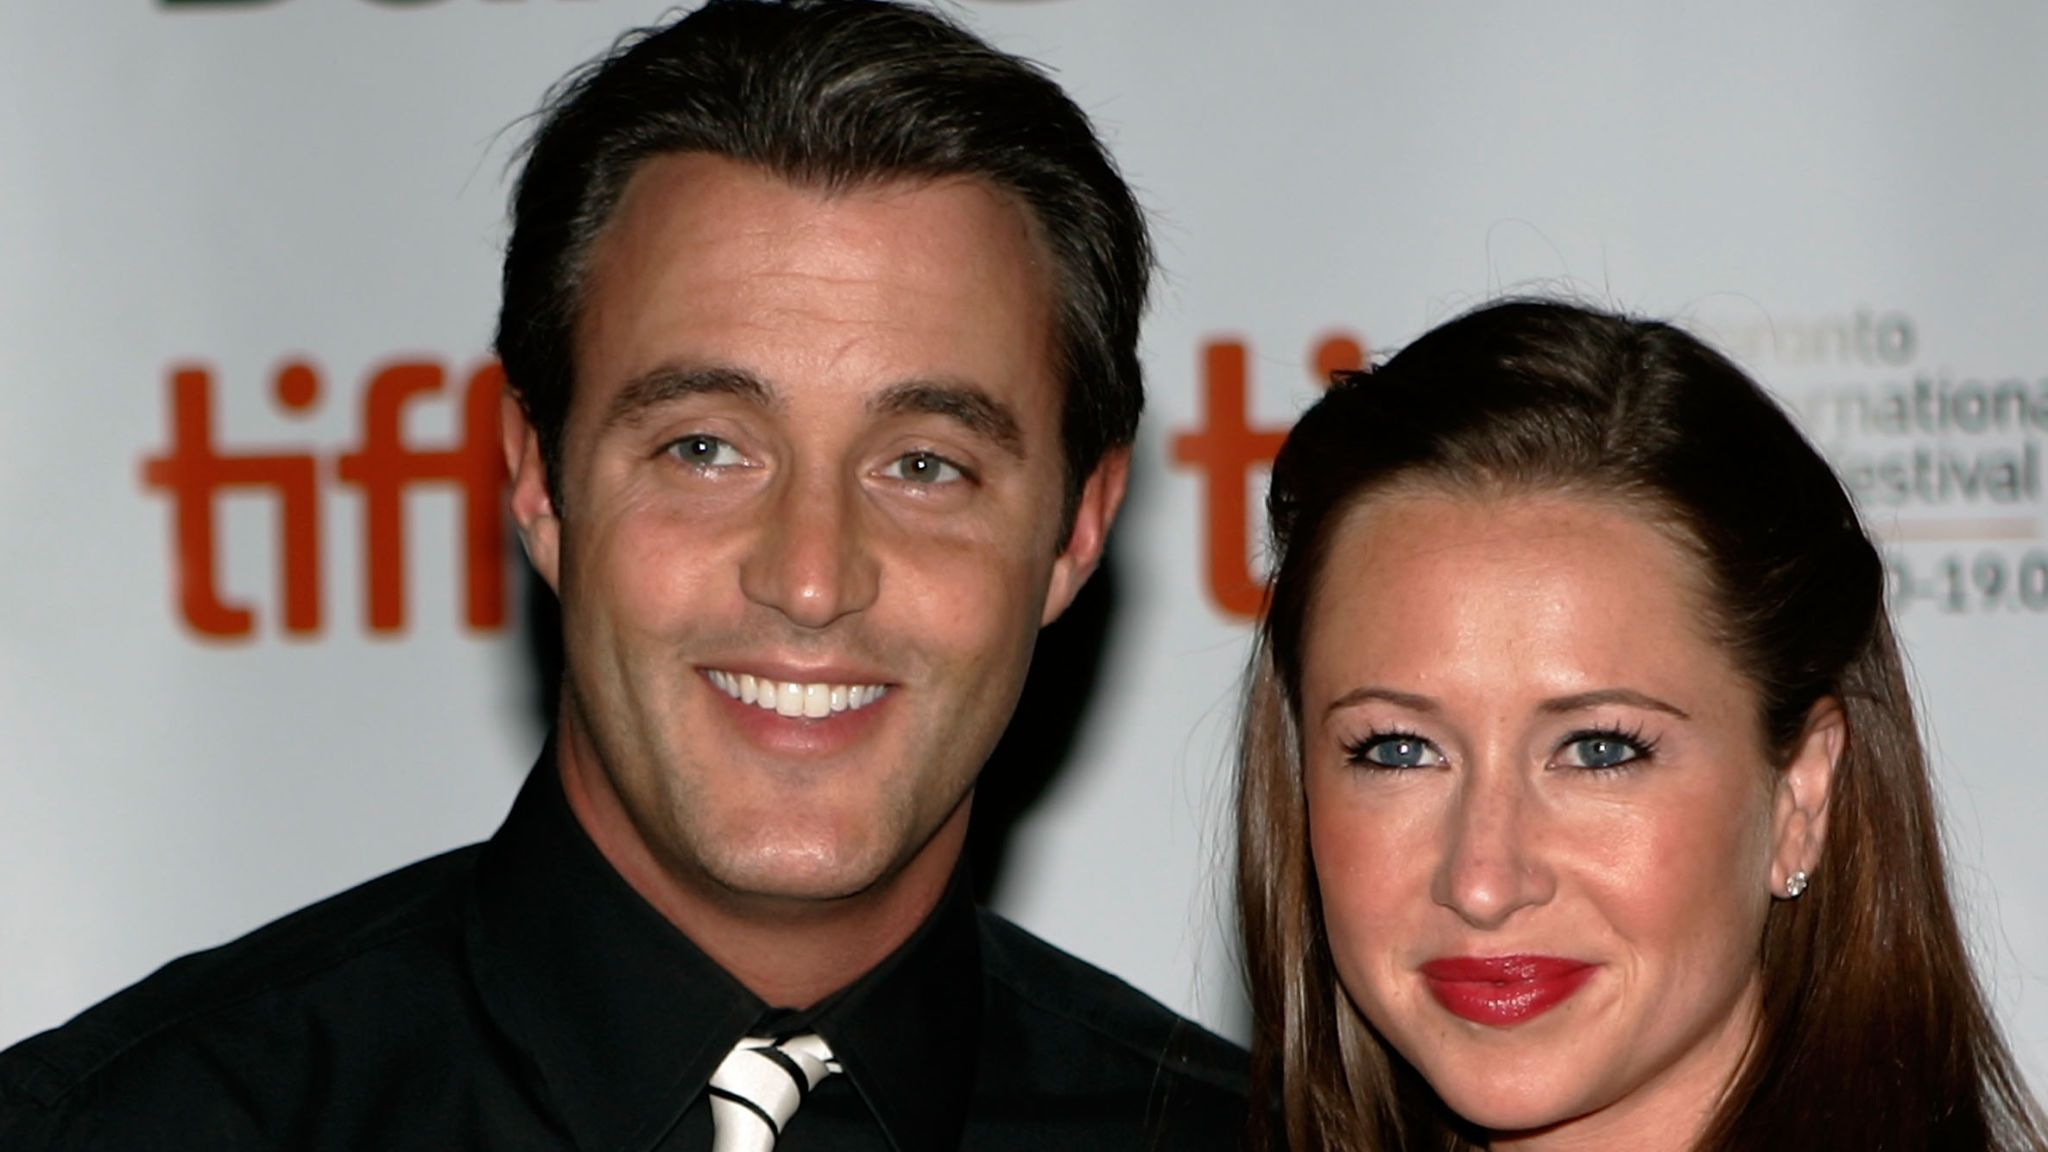 Canadian power couple Jessica and Ben Mulroney